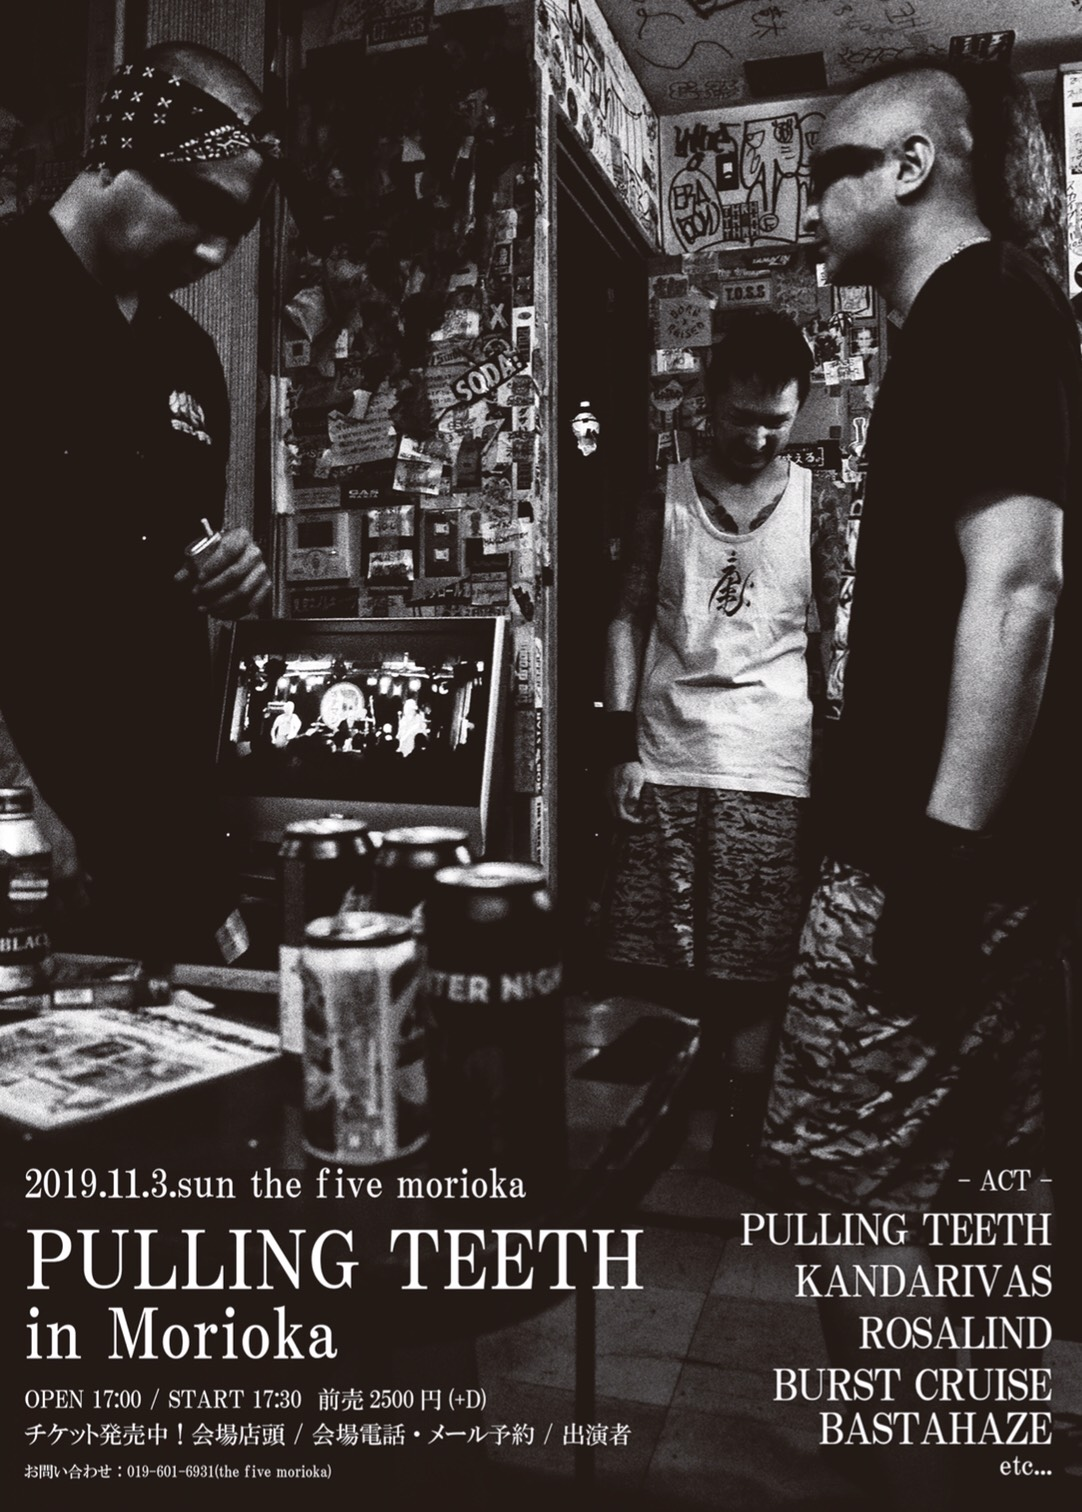 PULLING TEETH in Morioka